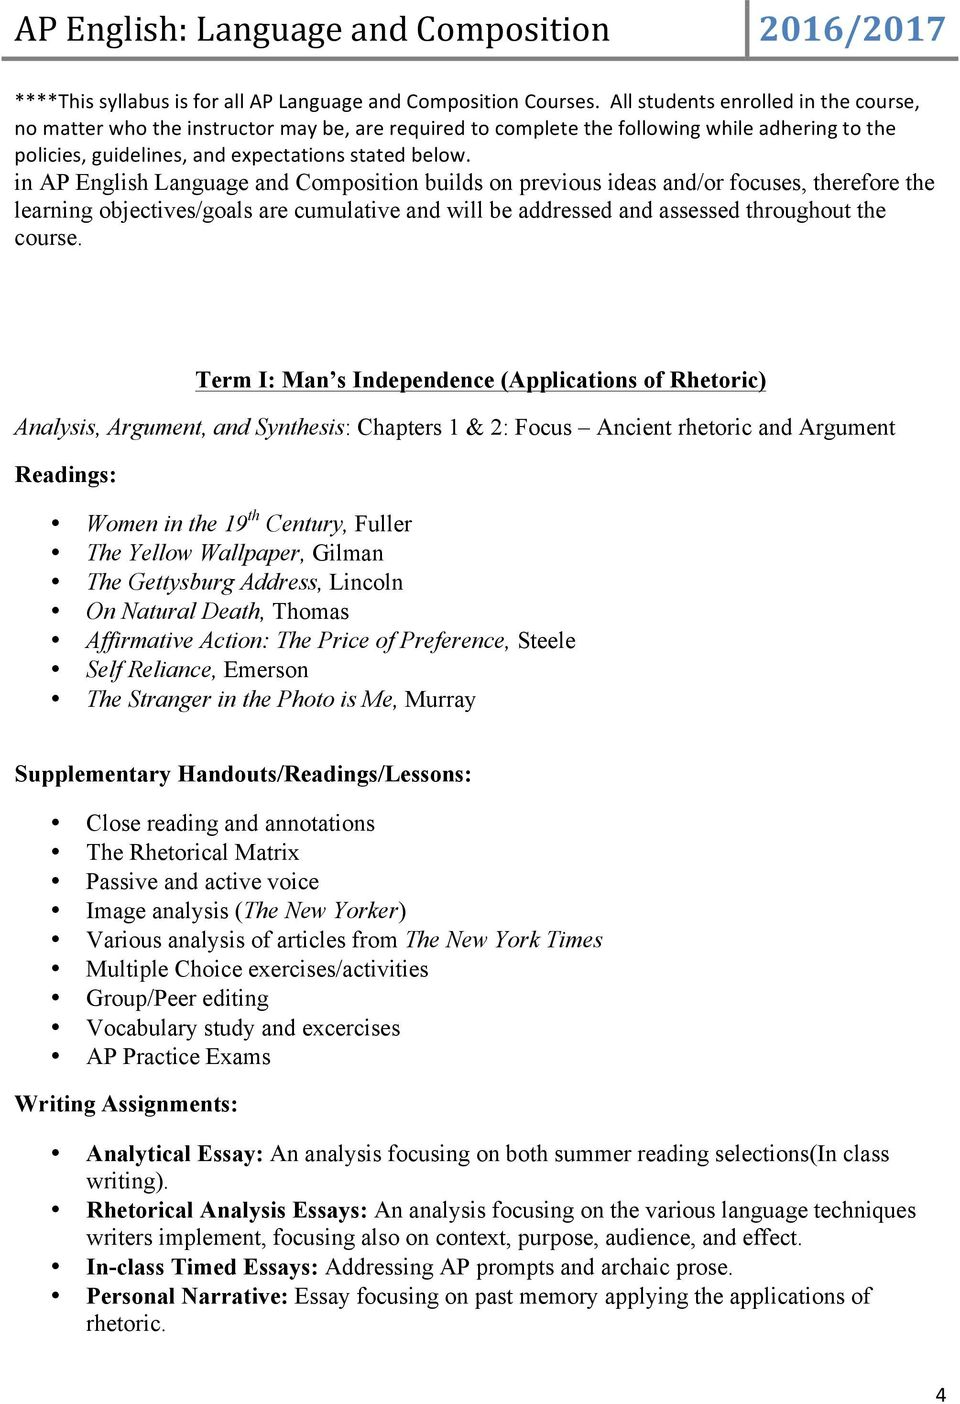 ap language and composition analysis essay